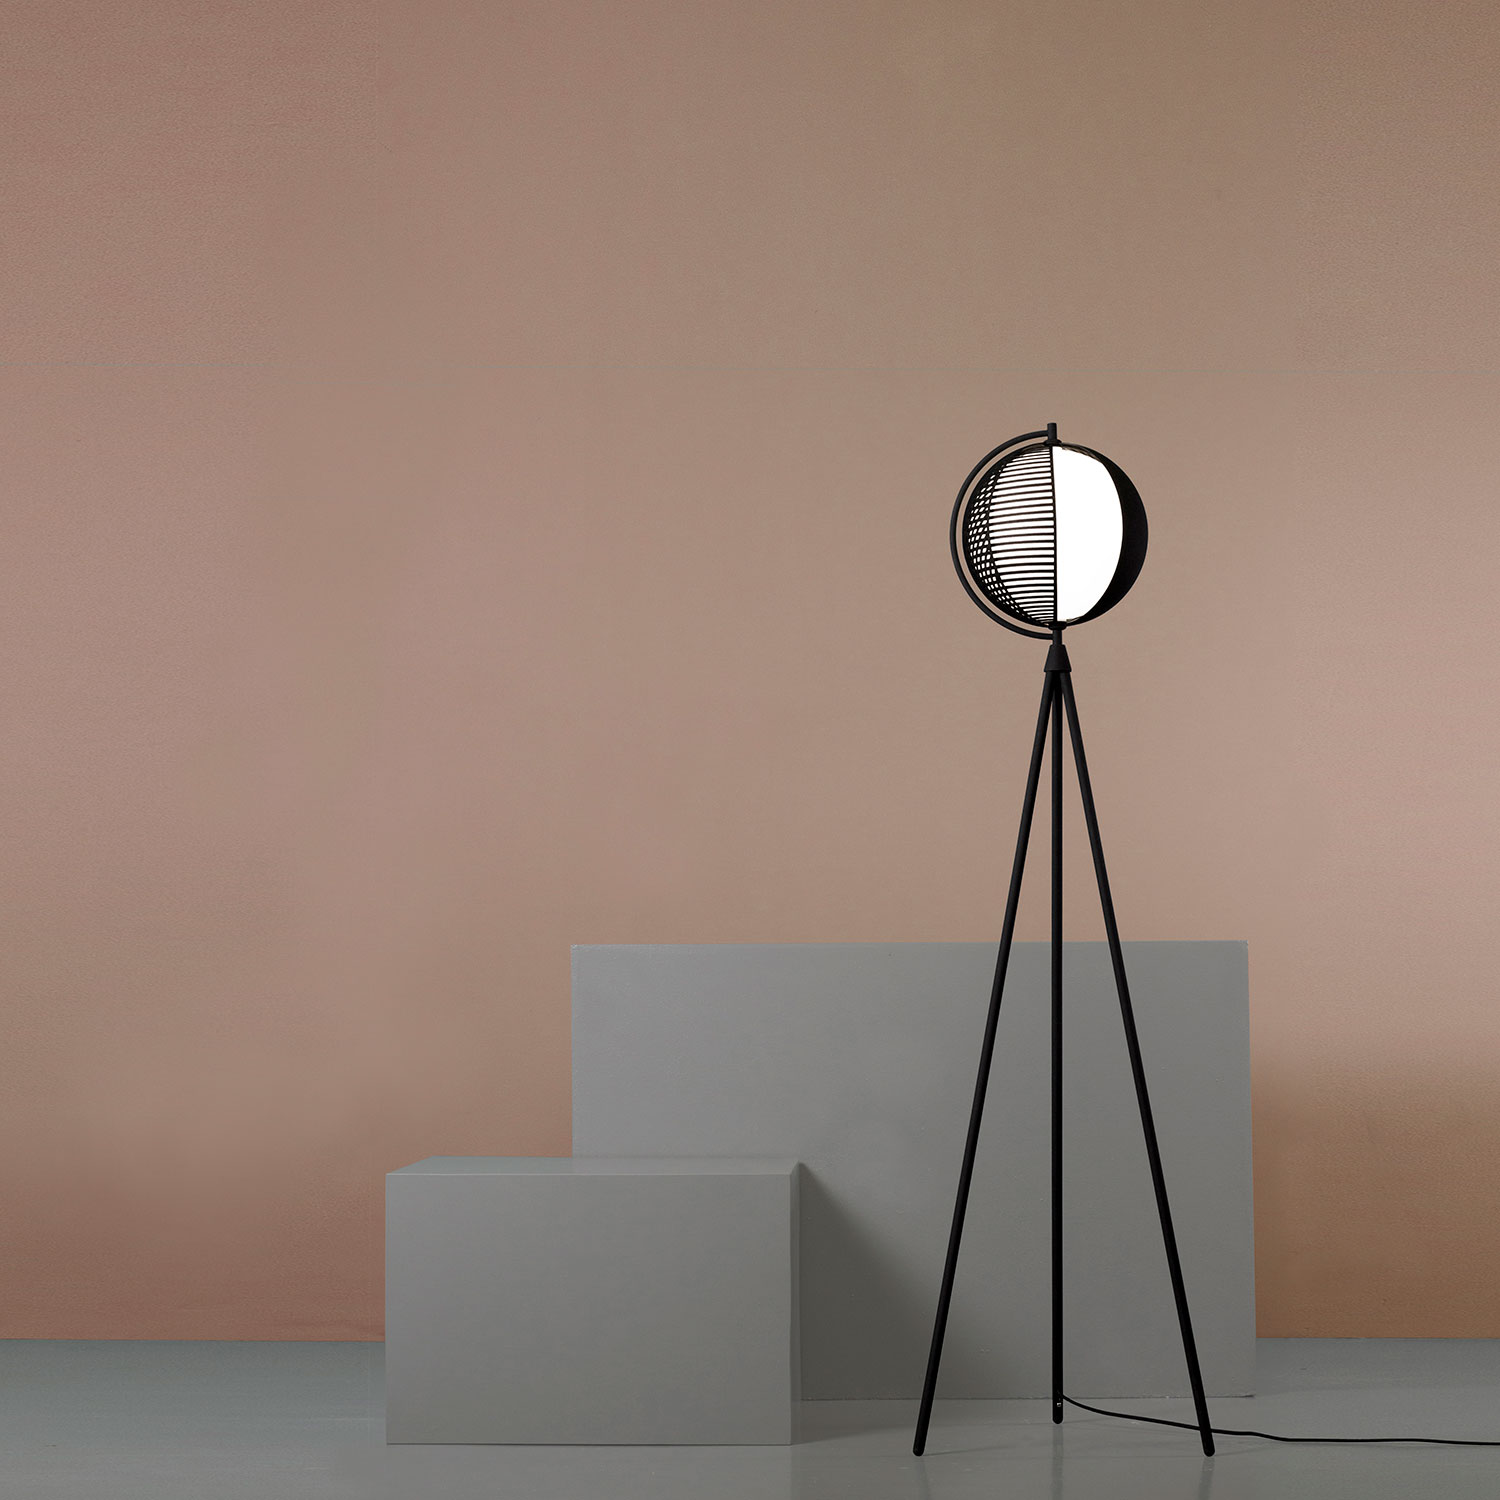 The Iconic Modern Floor Lamp That Will Change Your Mind 3 modern floor lamp The Iconic Modern Floor Lamp That Will Change Your Mind The Iconic Modern Floor Lamp That Will Change Your Mind 3